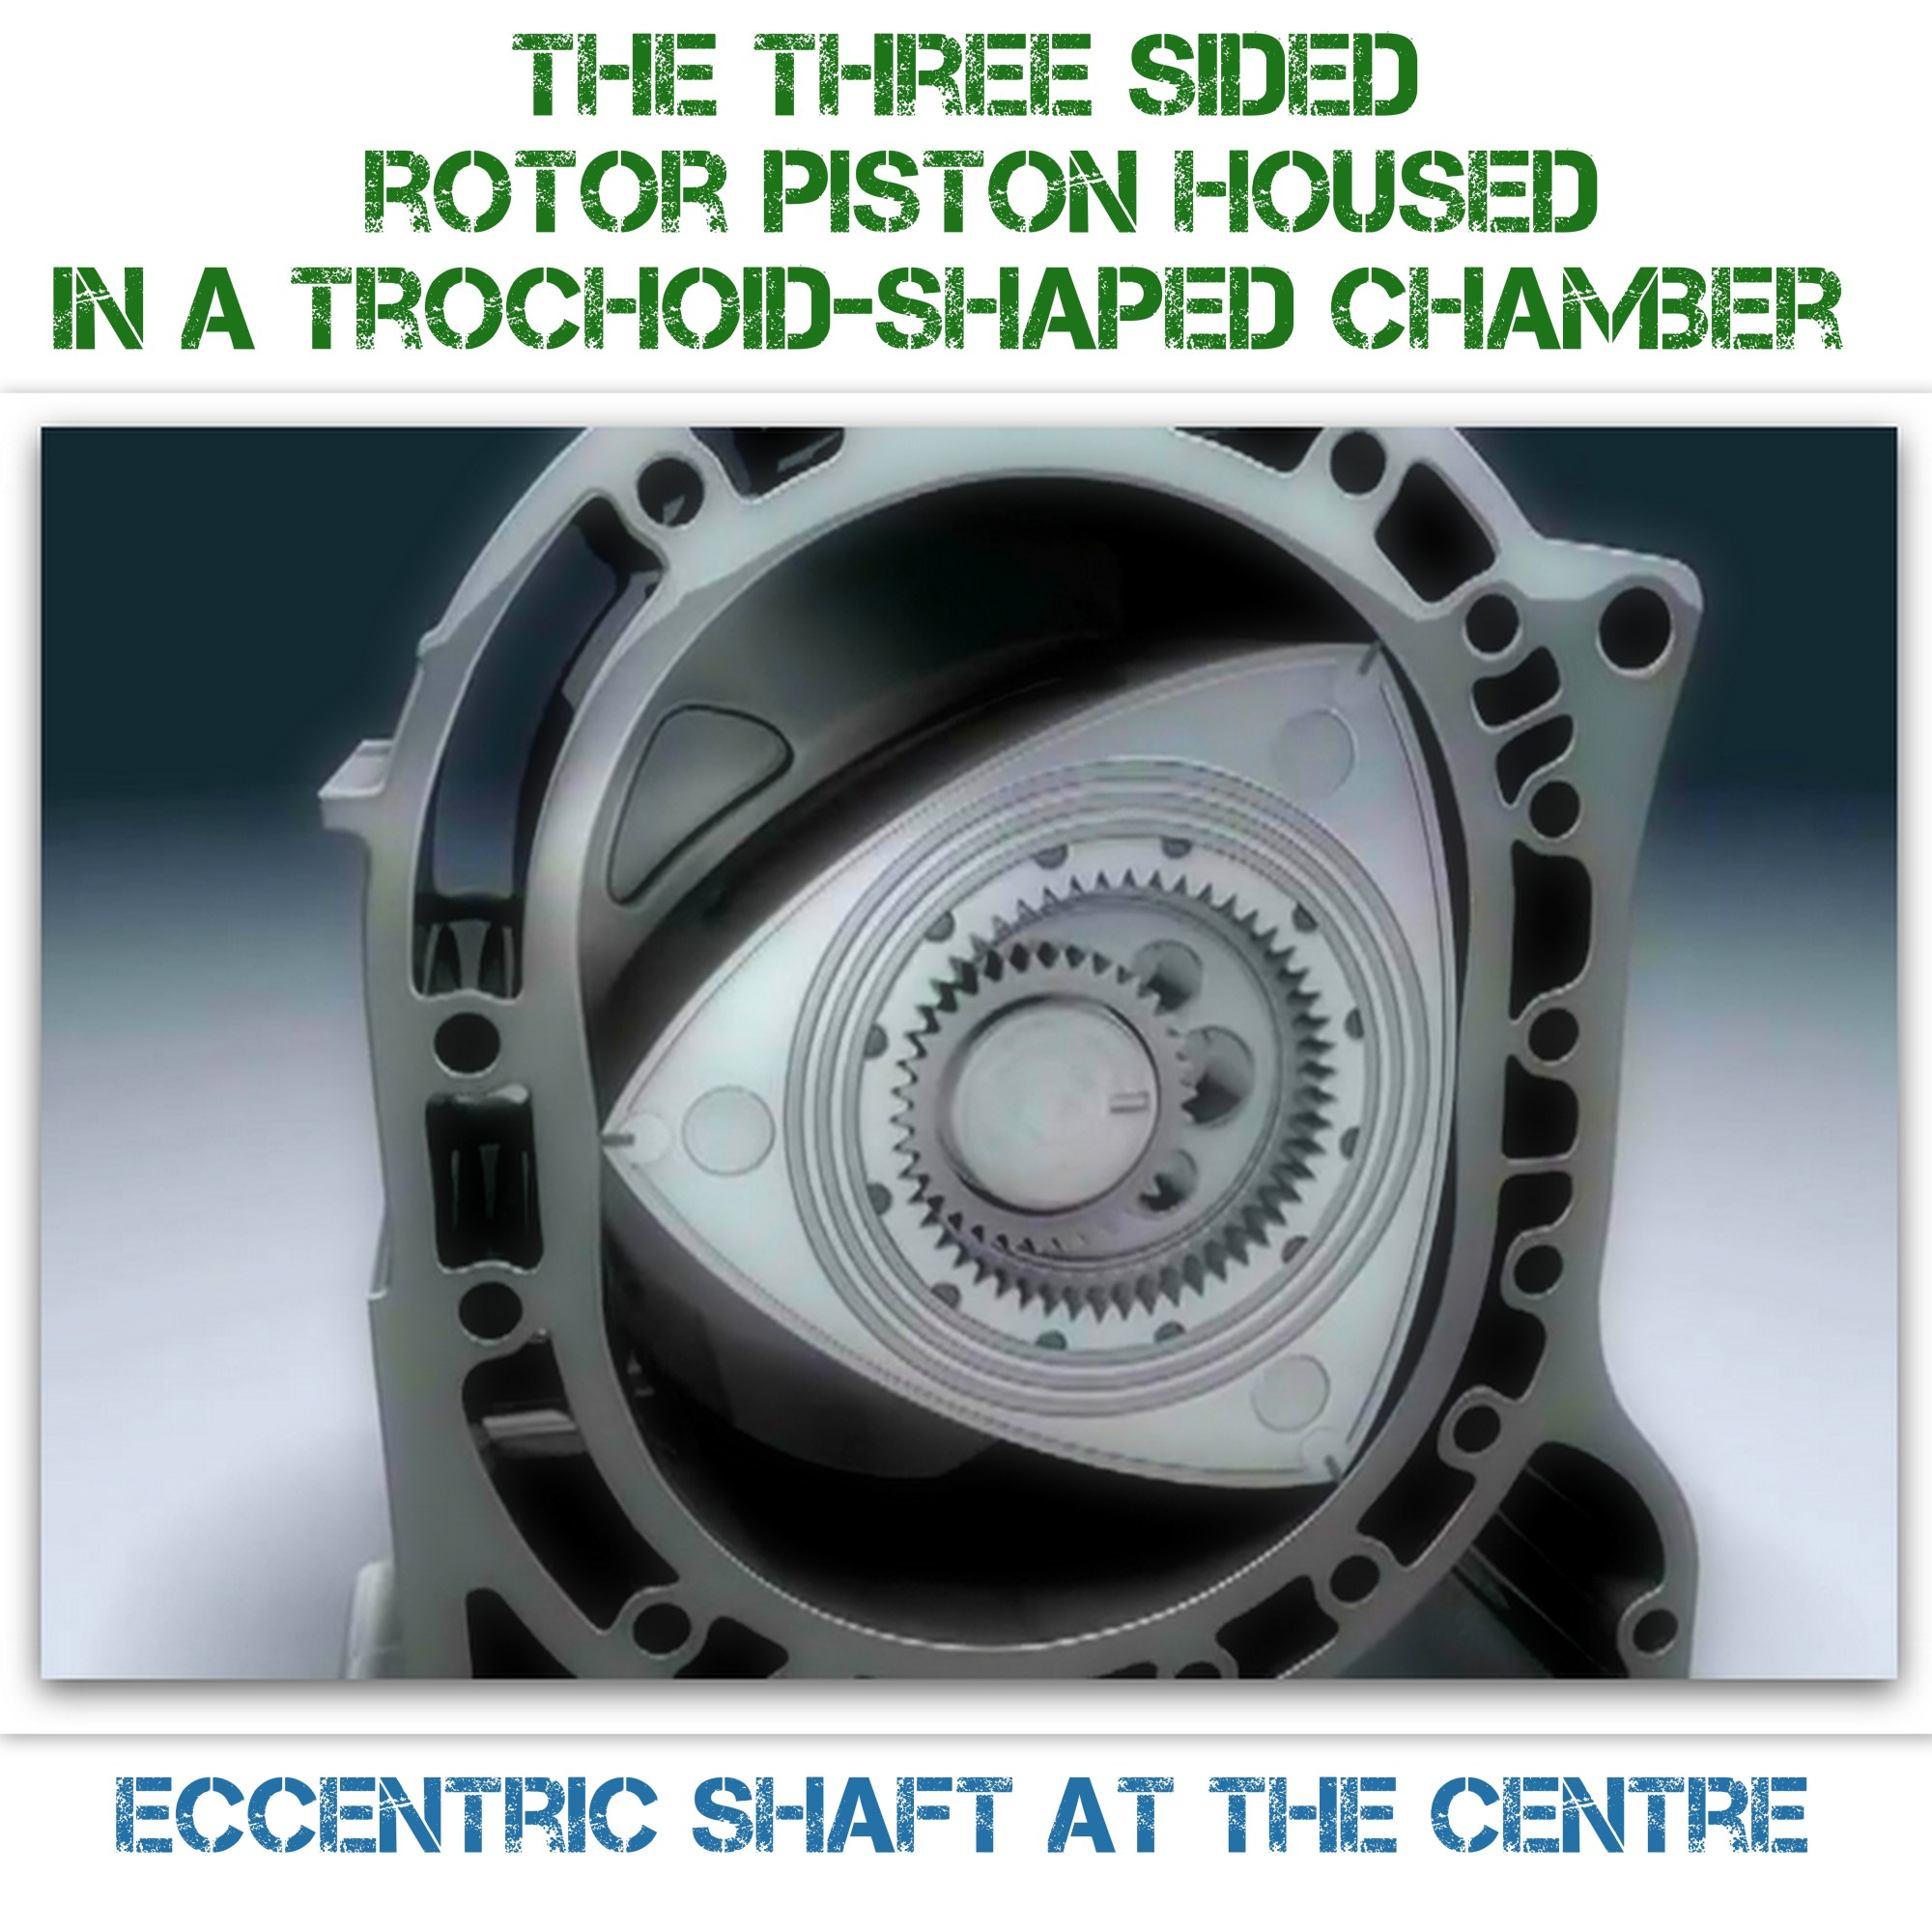 hight resolution of trochoid eccentric combustion chamber wankel engine